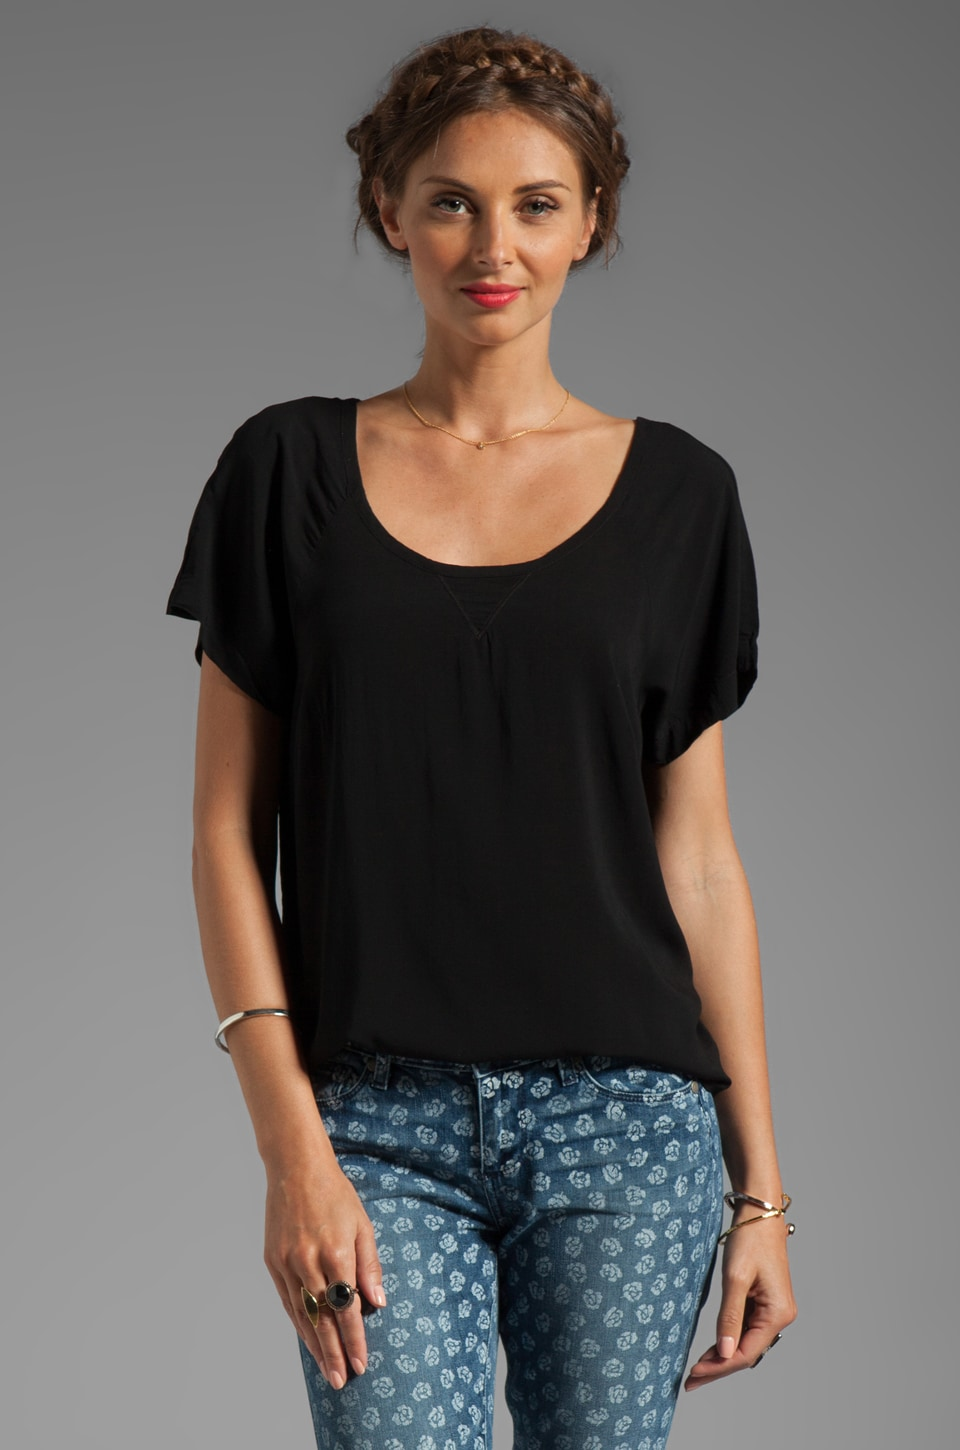 Splendid Shirting Short Sleeve Top in Black